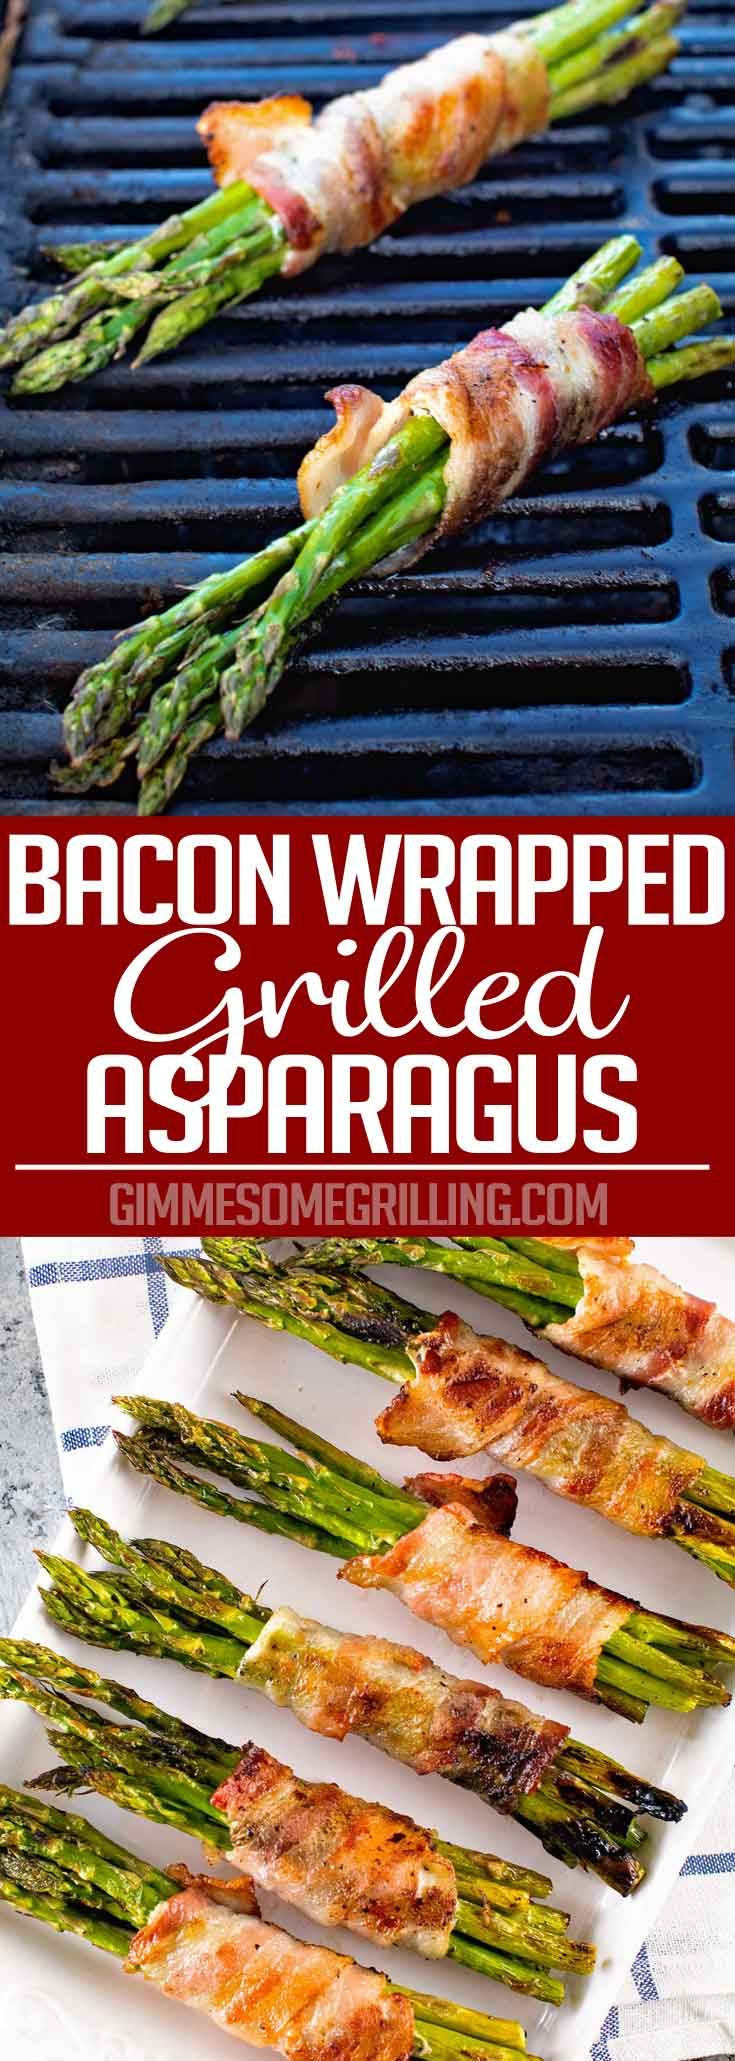 Grilled Bacon Wrapped Asparagus ~ Easy, Grilled Side Dish That is Paleo! Crispy Bacon Wrapped Around Tender Asparagus Spears!